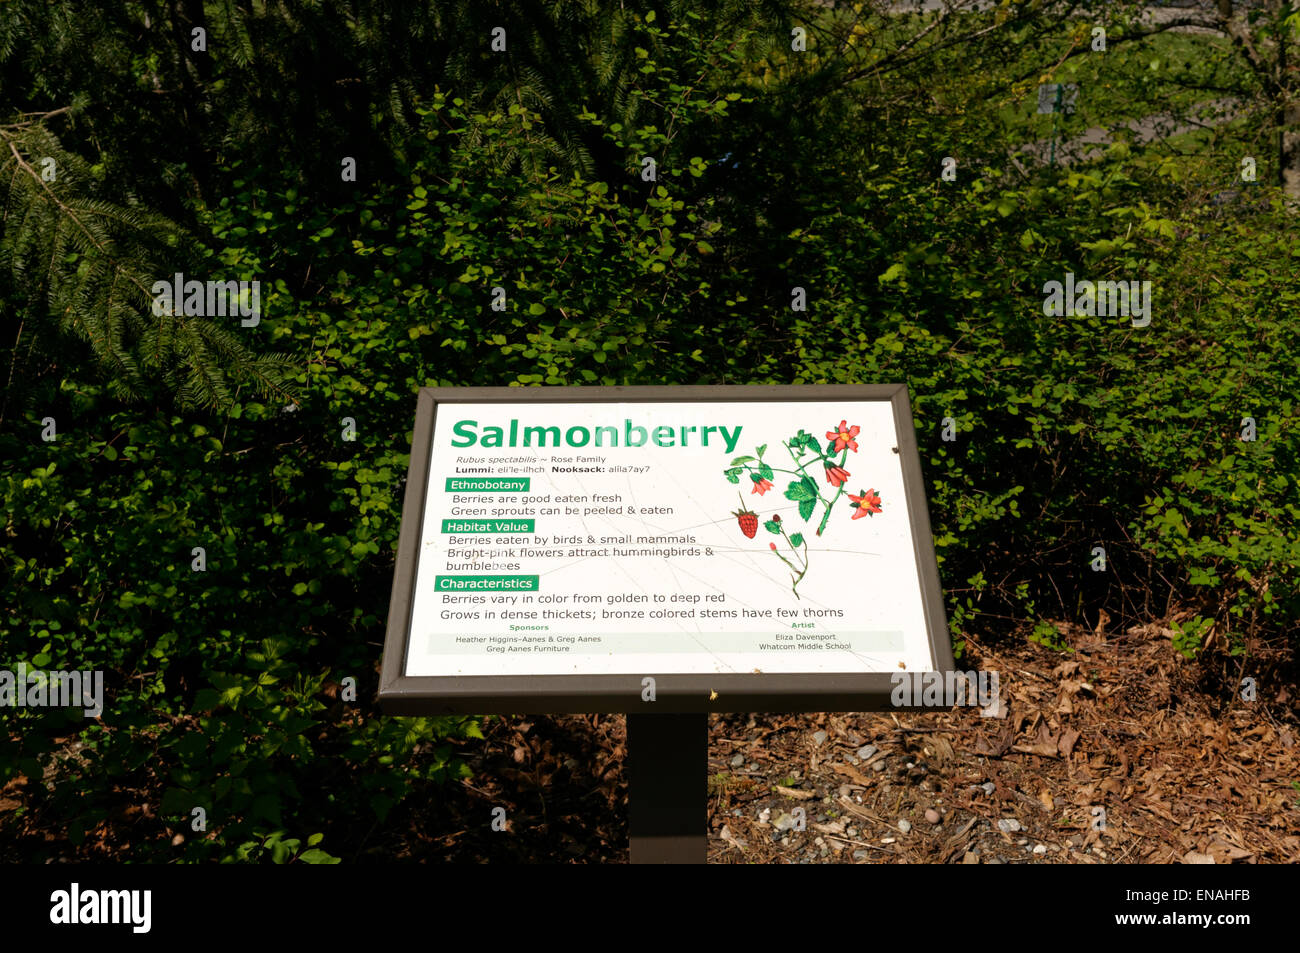 Salmonberry interpretive sign on a nature trail in the Maritime Heritage Park, Bellingham, Washington, USA - Stock Image